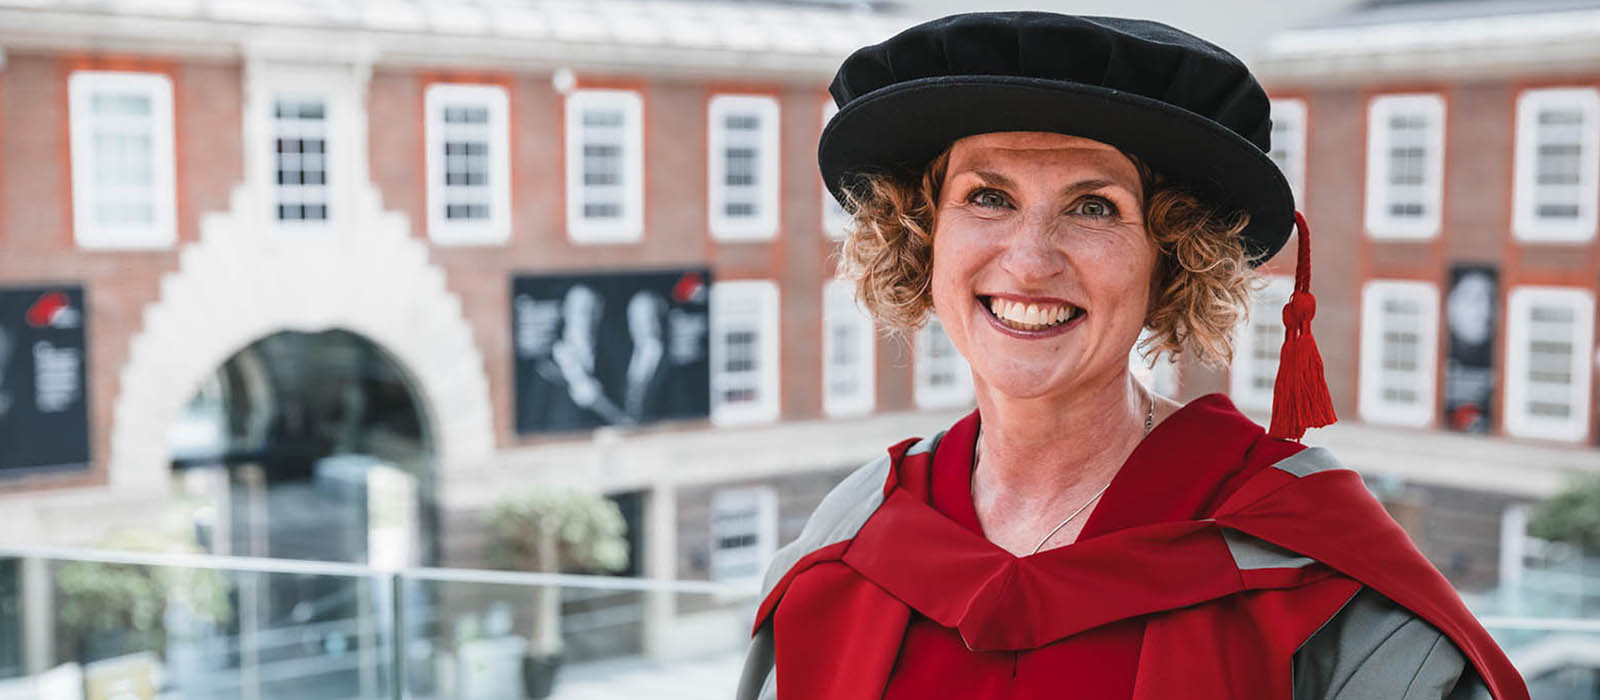 Middlesex University London confers an Honorary Doctorate on Maggie Appleton